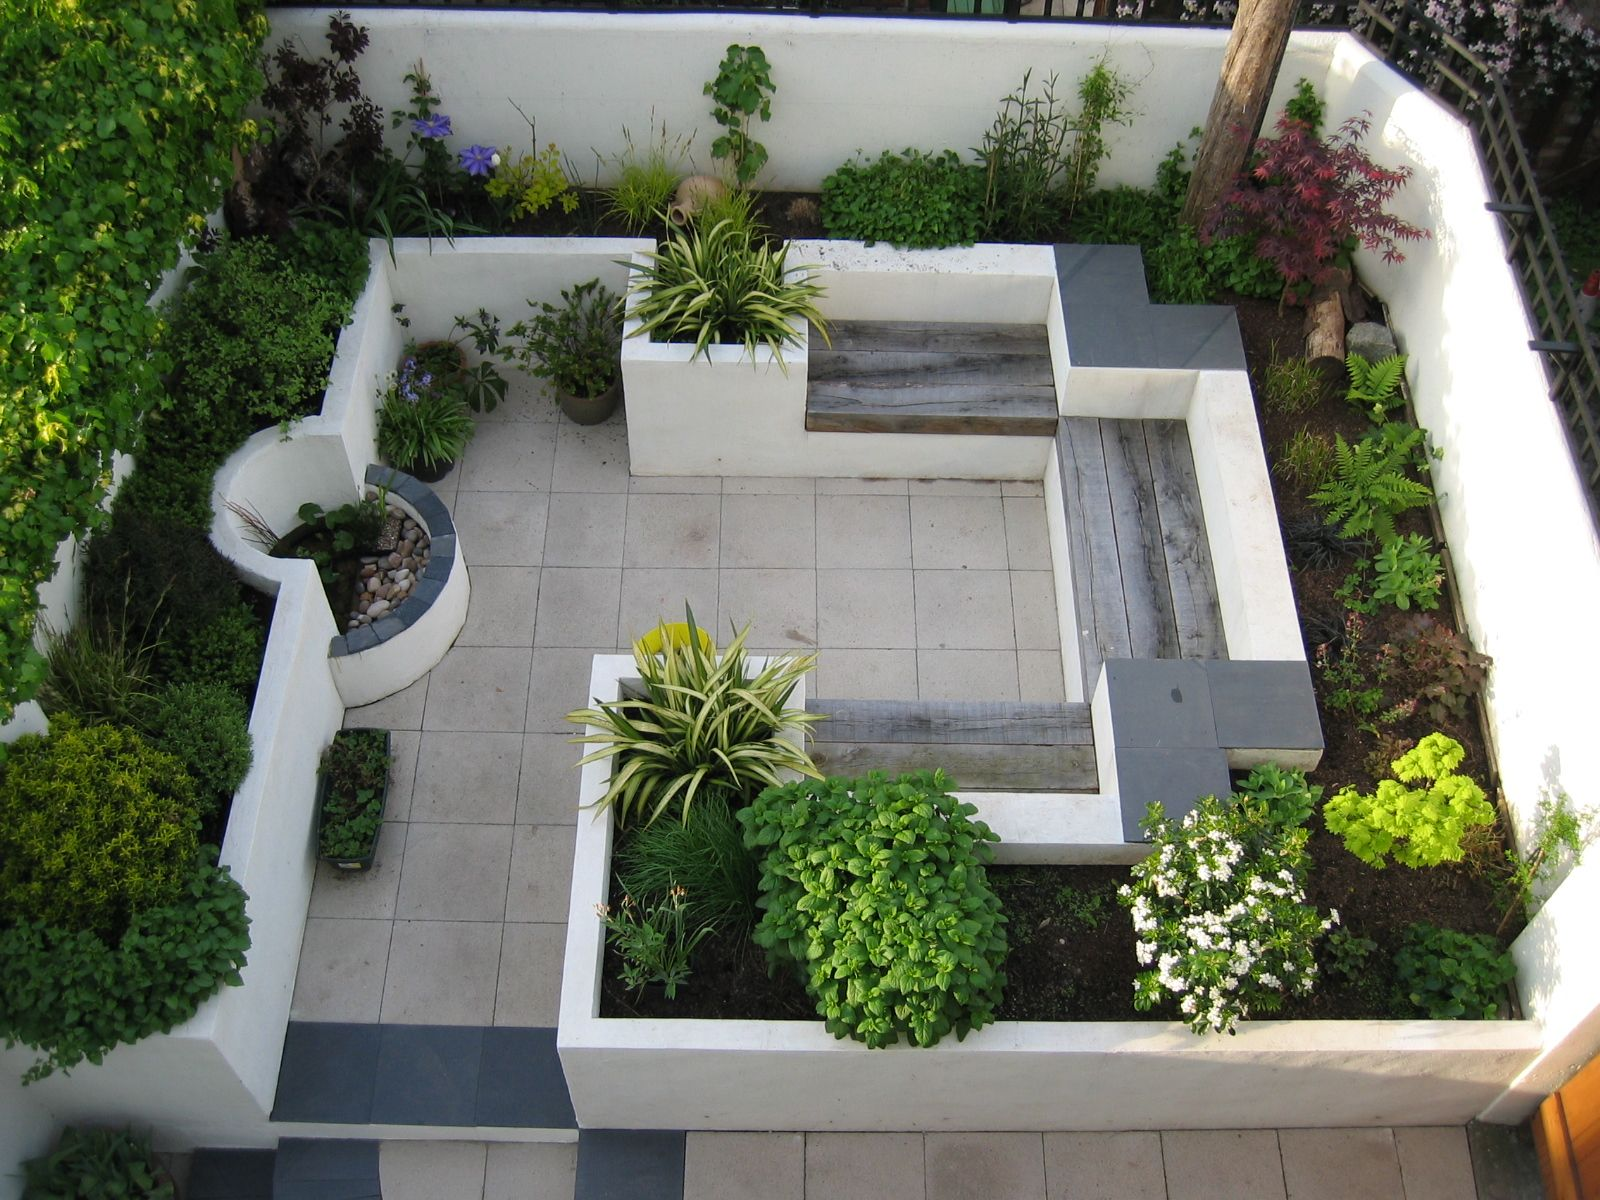 Modern Garden Design 10 tips for a stylish contemporary garden design This Modern Courtyard Garden Makes Good Use Of A Small Space With Built In Seating